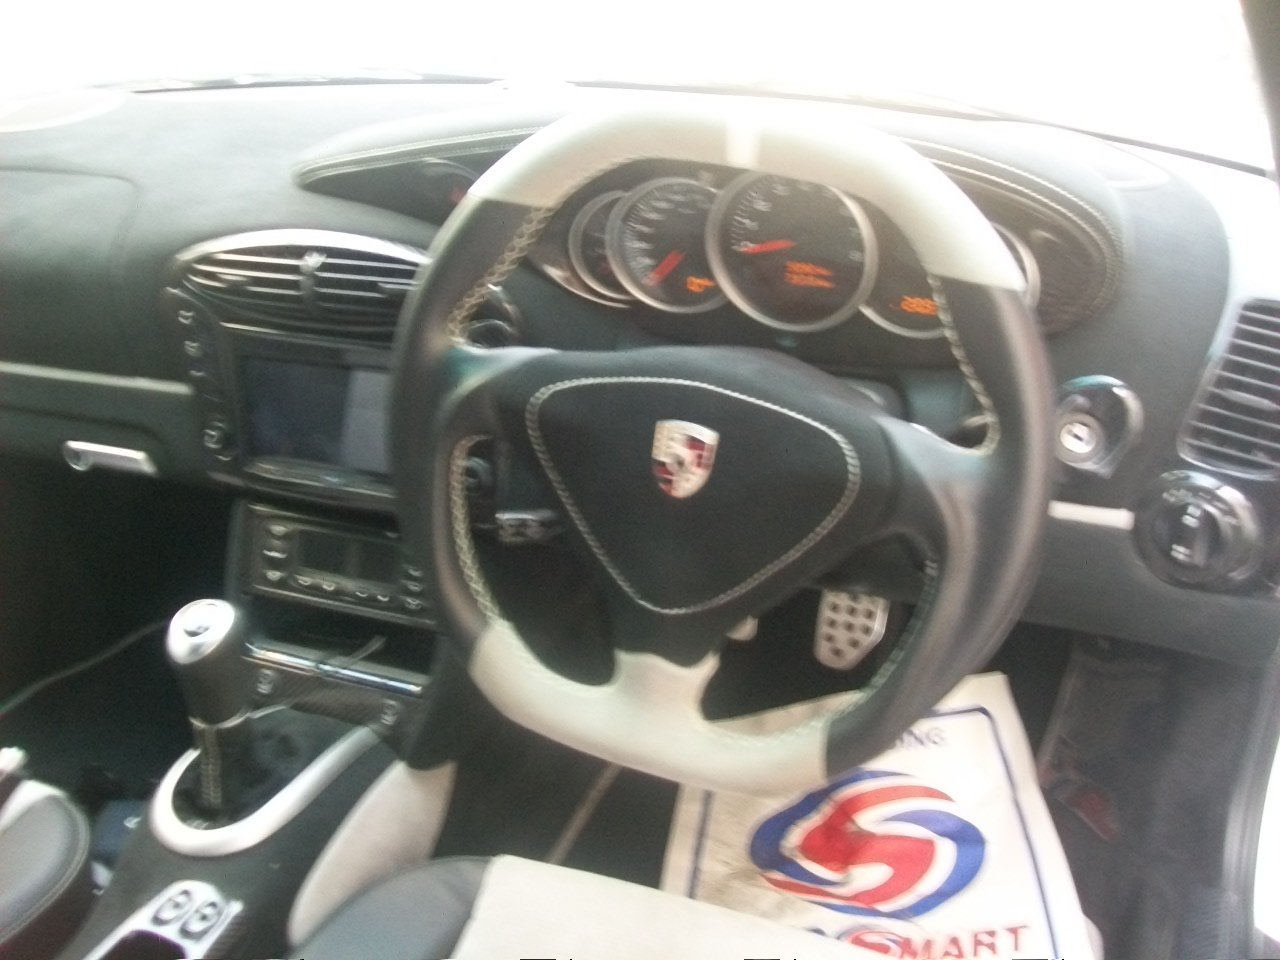 2001 Porsche 911 full gt3 conversion 3.9ltr hartech new For Sale (picture 4 of 6)